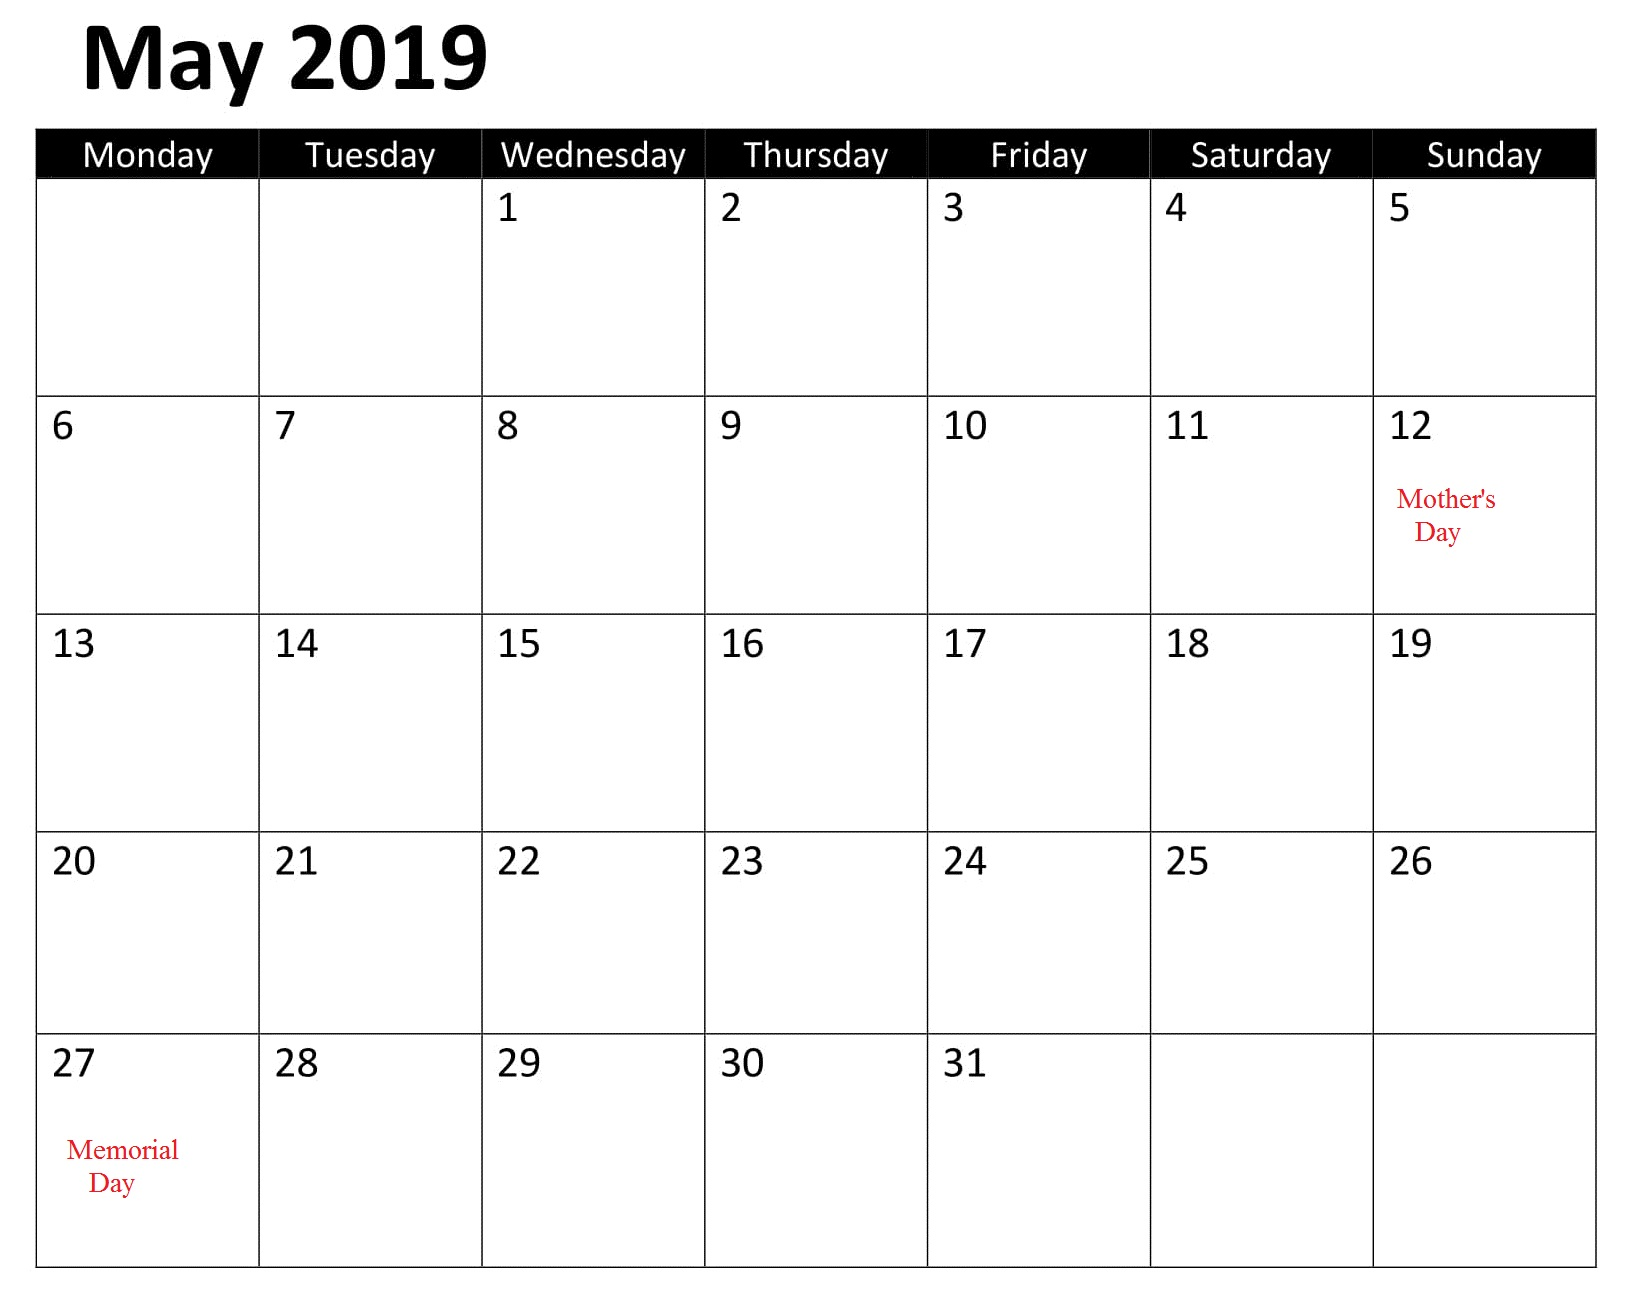 Calendar May 2019 Template With Holidays